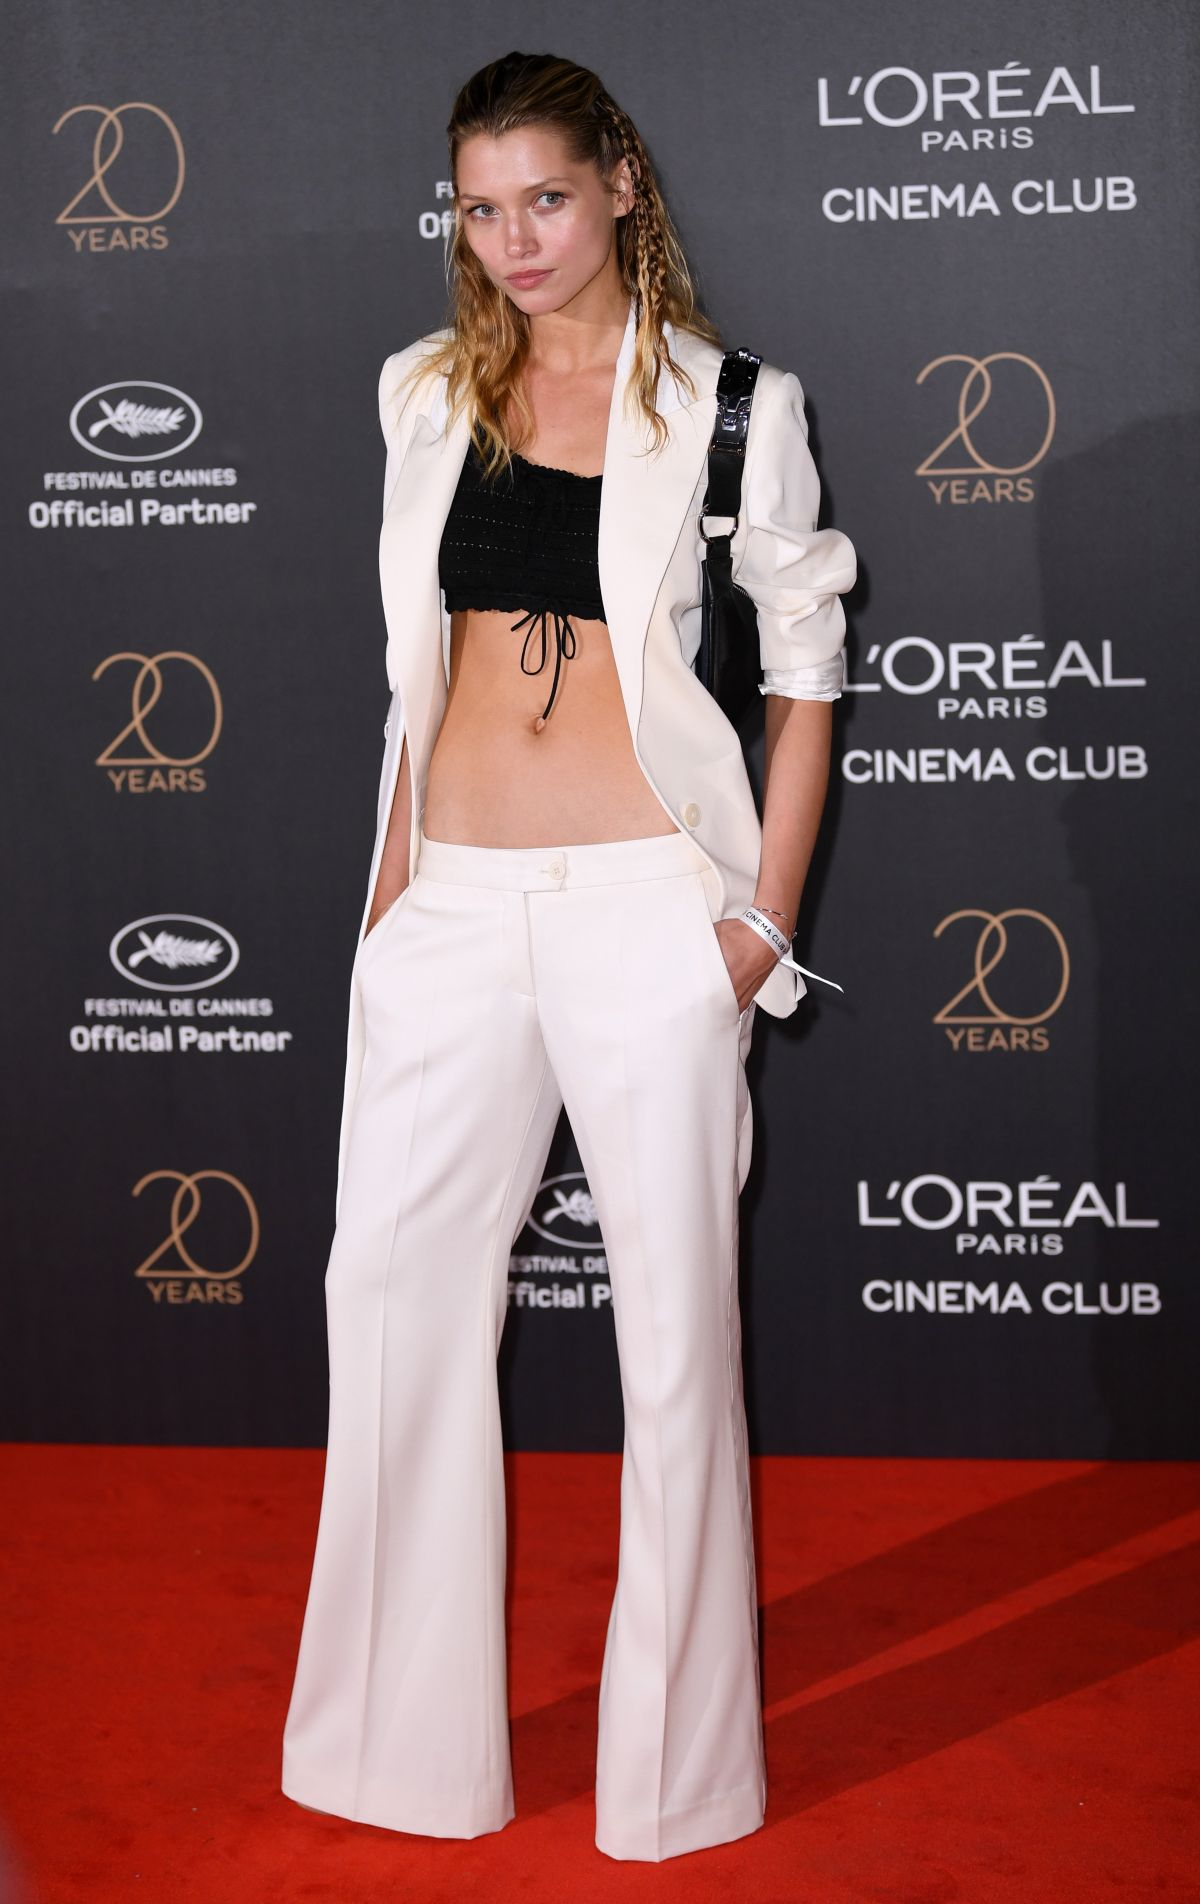 HANA JIRICKOVA at L'Oreal 20th Anniversary Party at Cannes Film Festival 05/24/2017